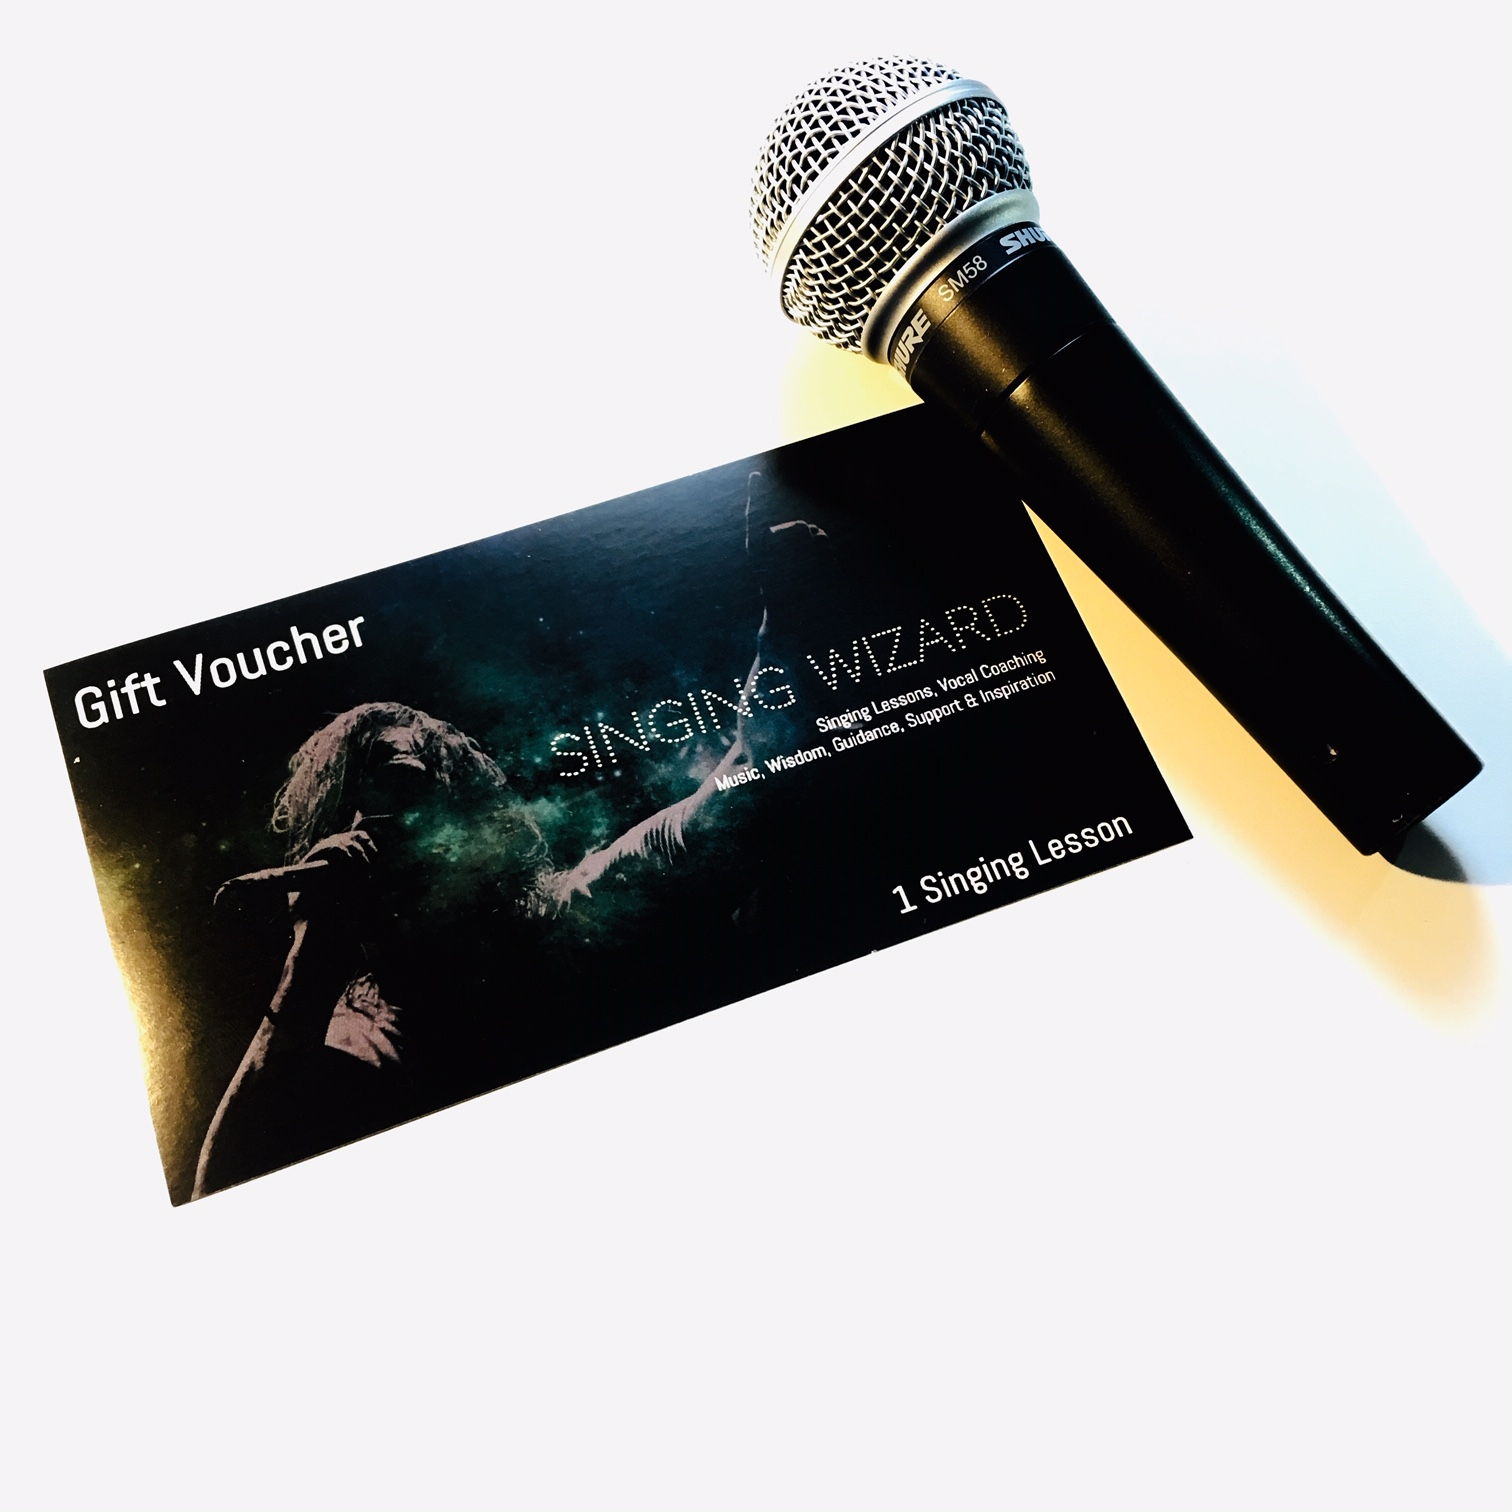 Singing Gift Voucher and Microphone